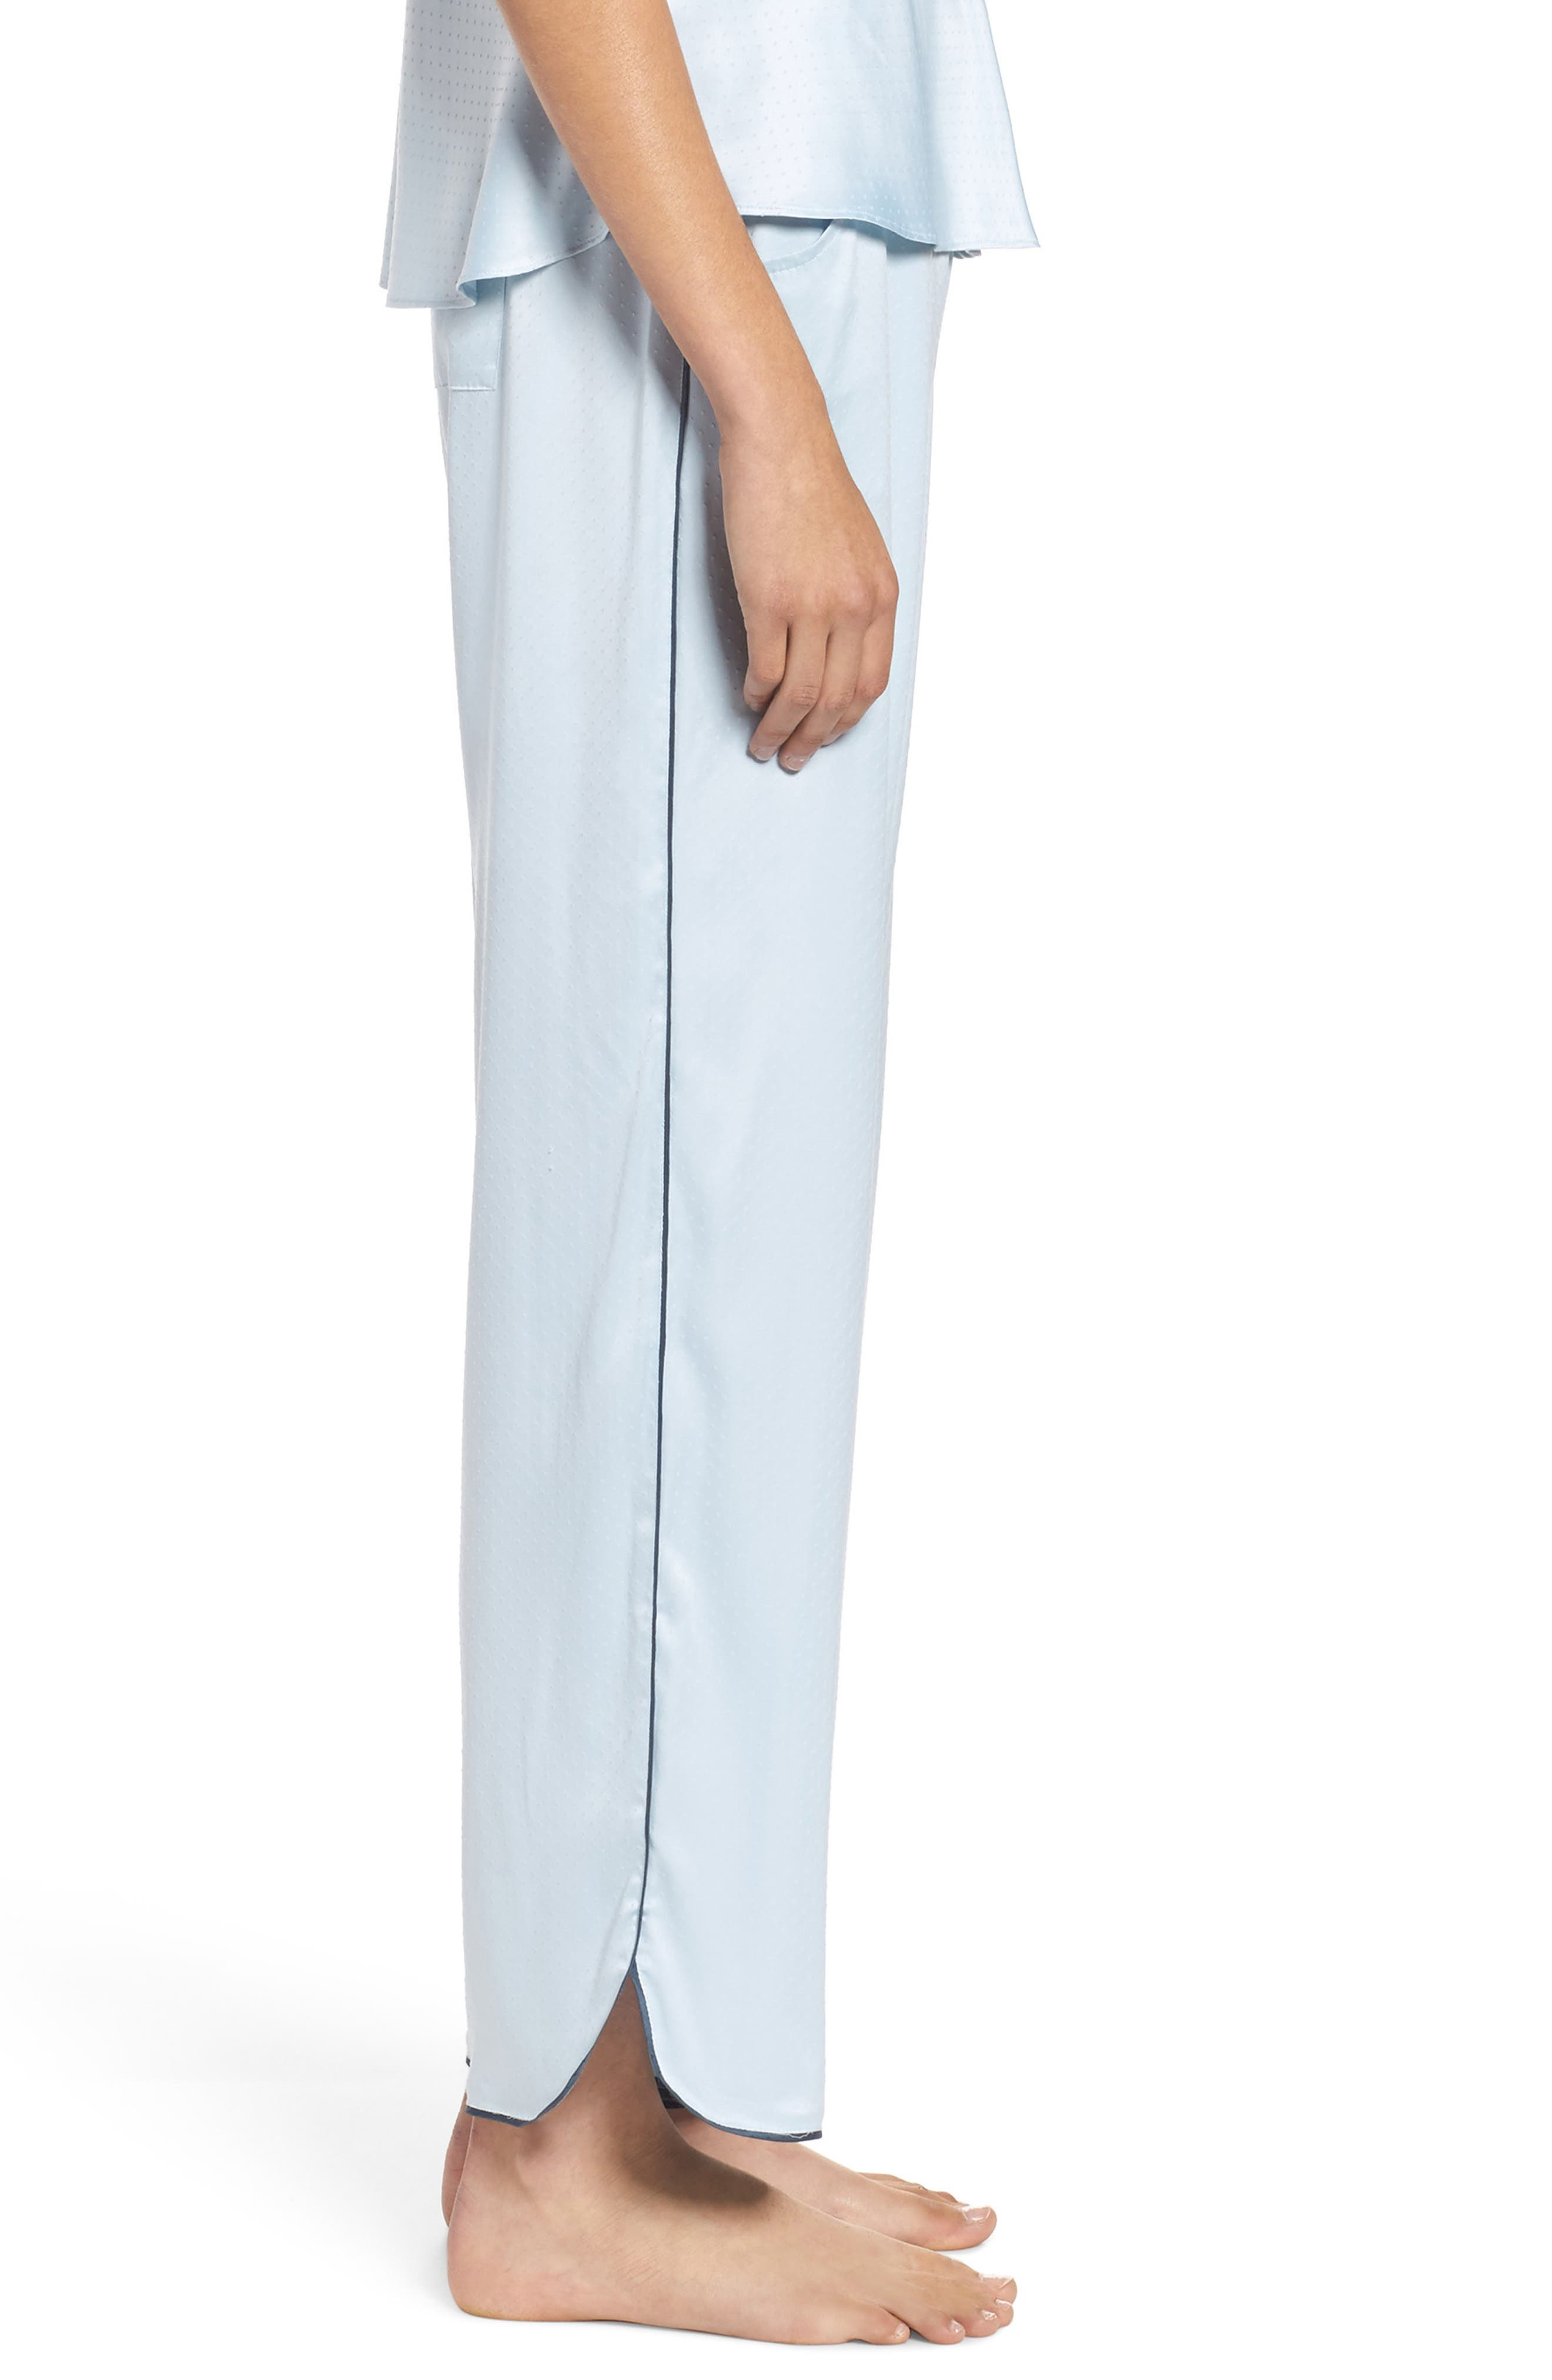 Chelsea27 Late Nights Satin Lounge Pants,                             Alternate thumbnail 3, color,                             Blue Drift